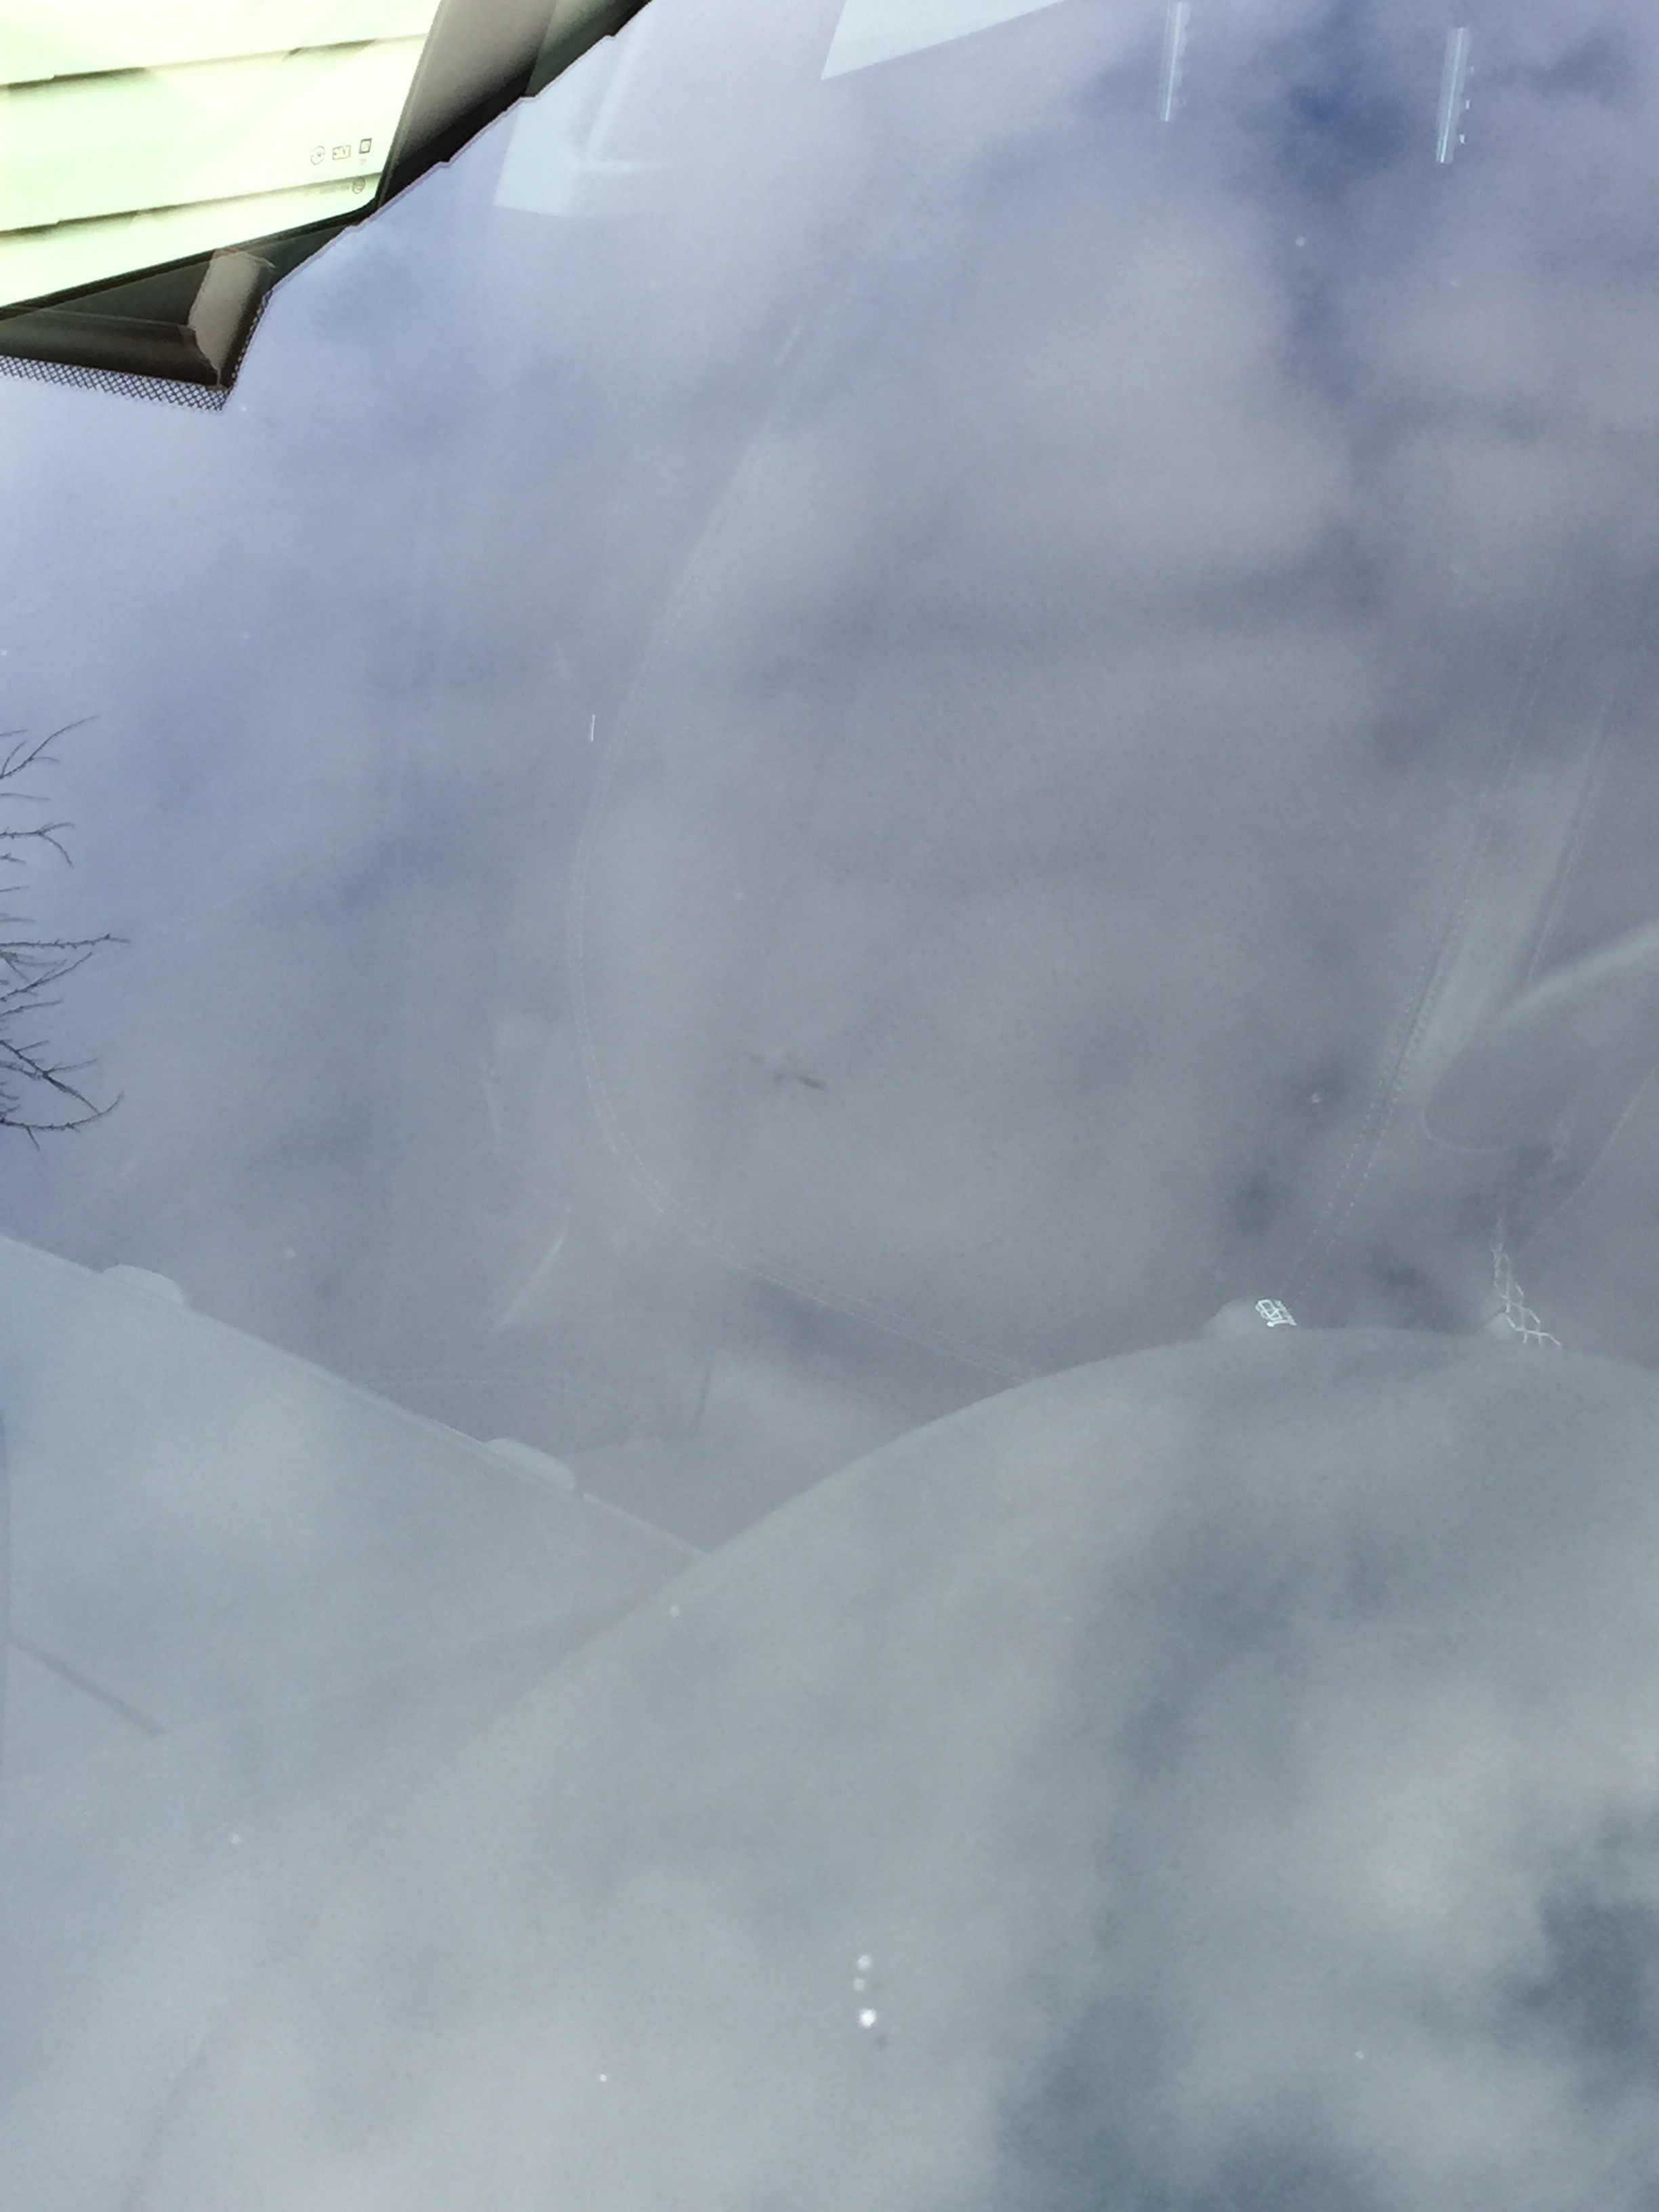 windshield stone chip repair in New Jersey by Platinum Auto Glass New Jersey  @platinumautoglassnj.com